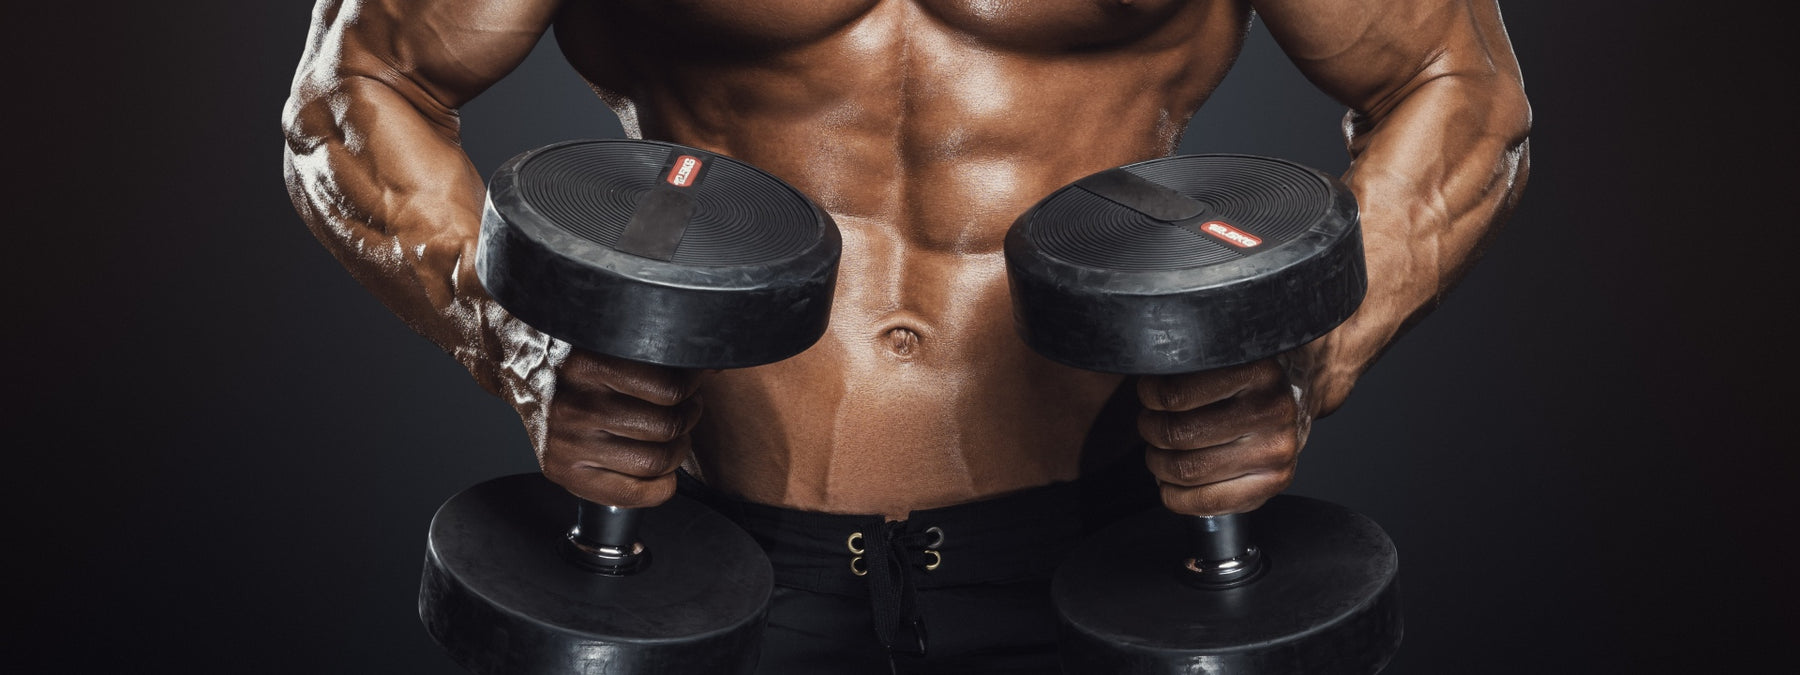 Three Blistering Dumbbell Workouts You Can Do In 30 Minutes